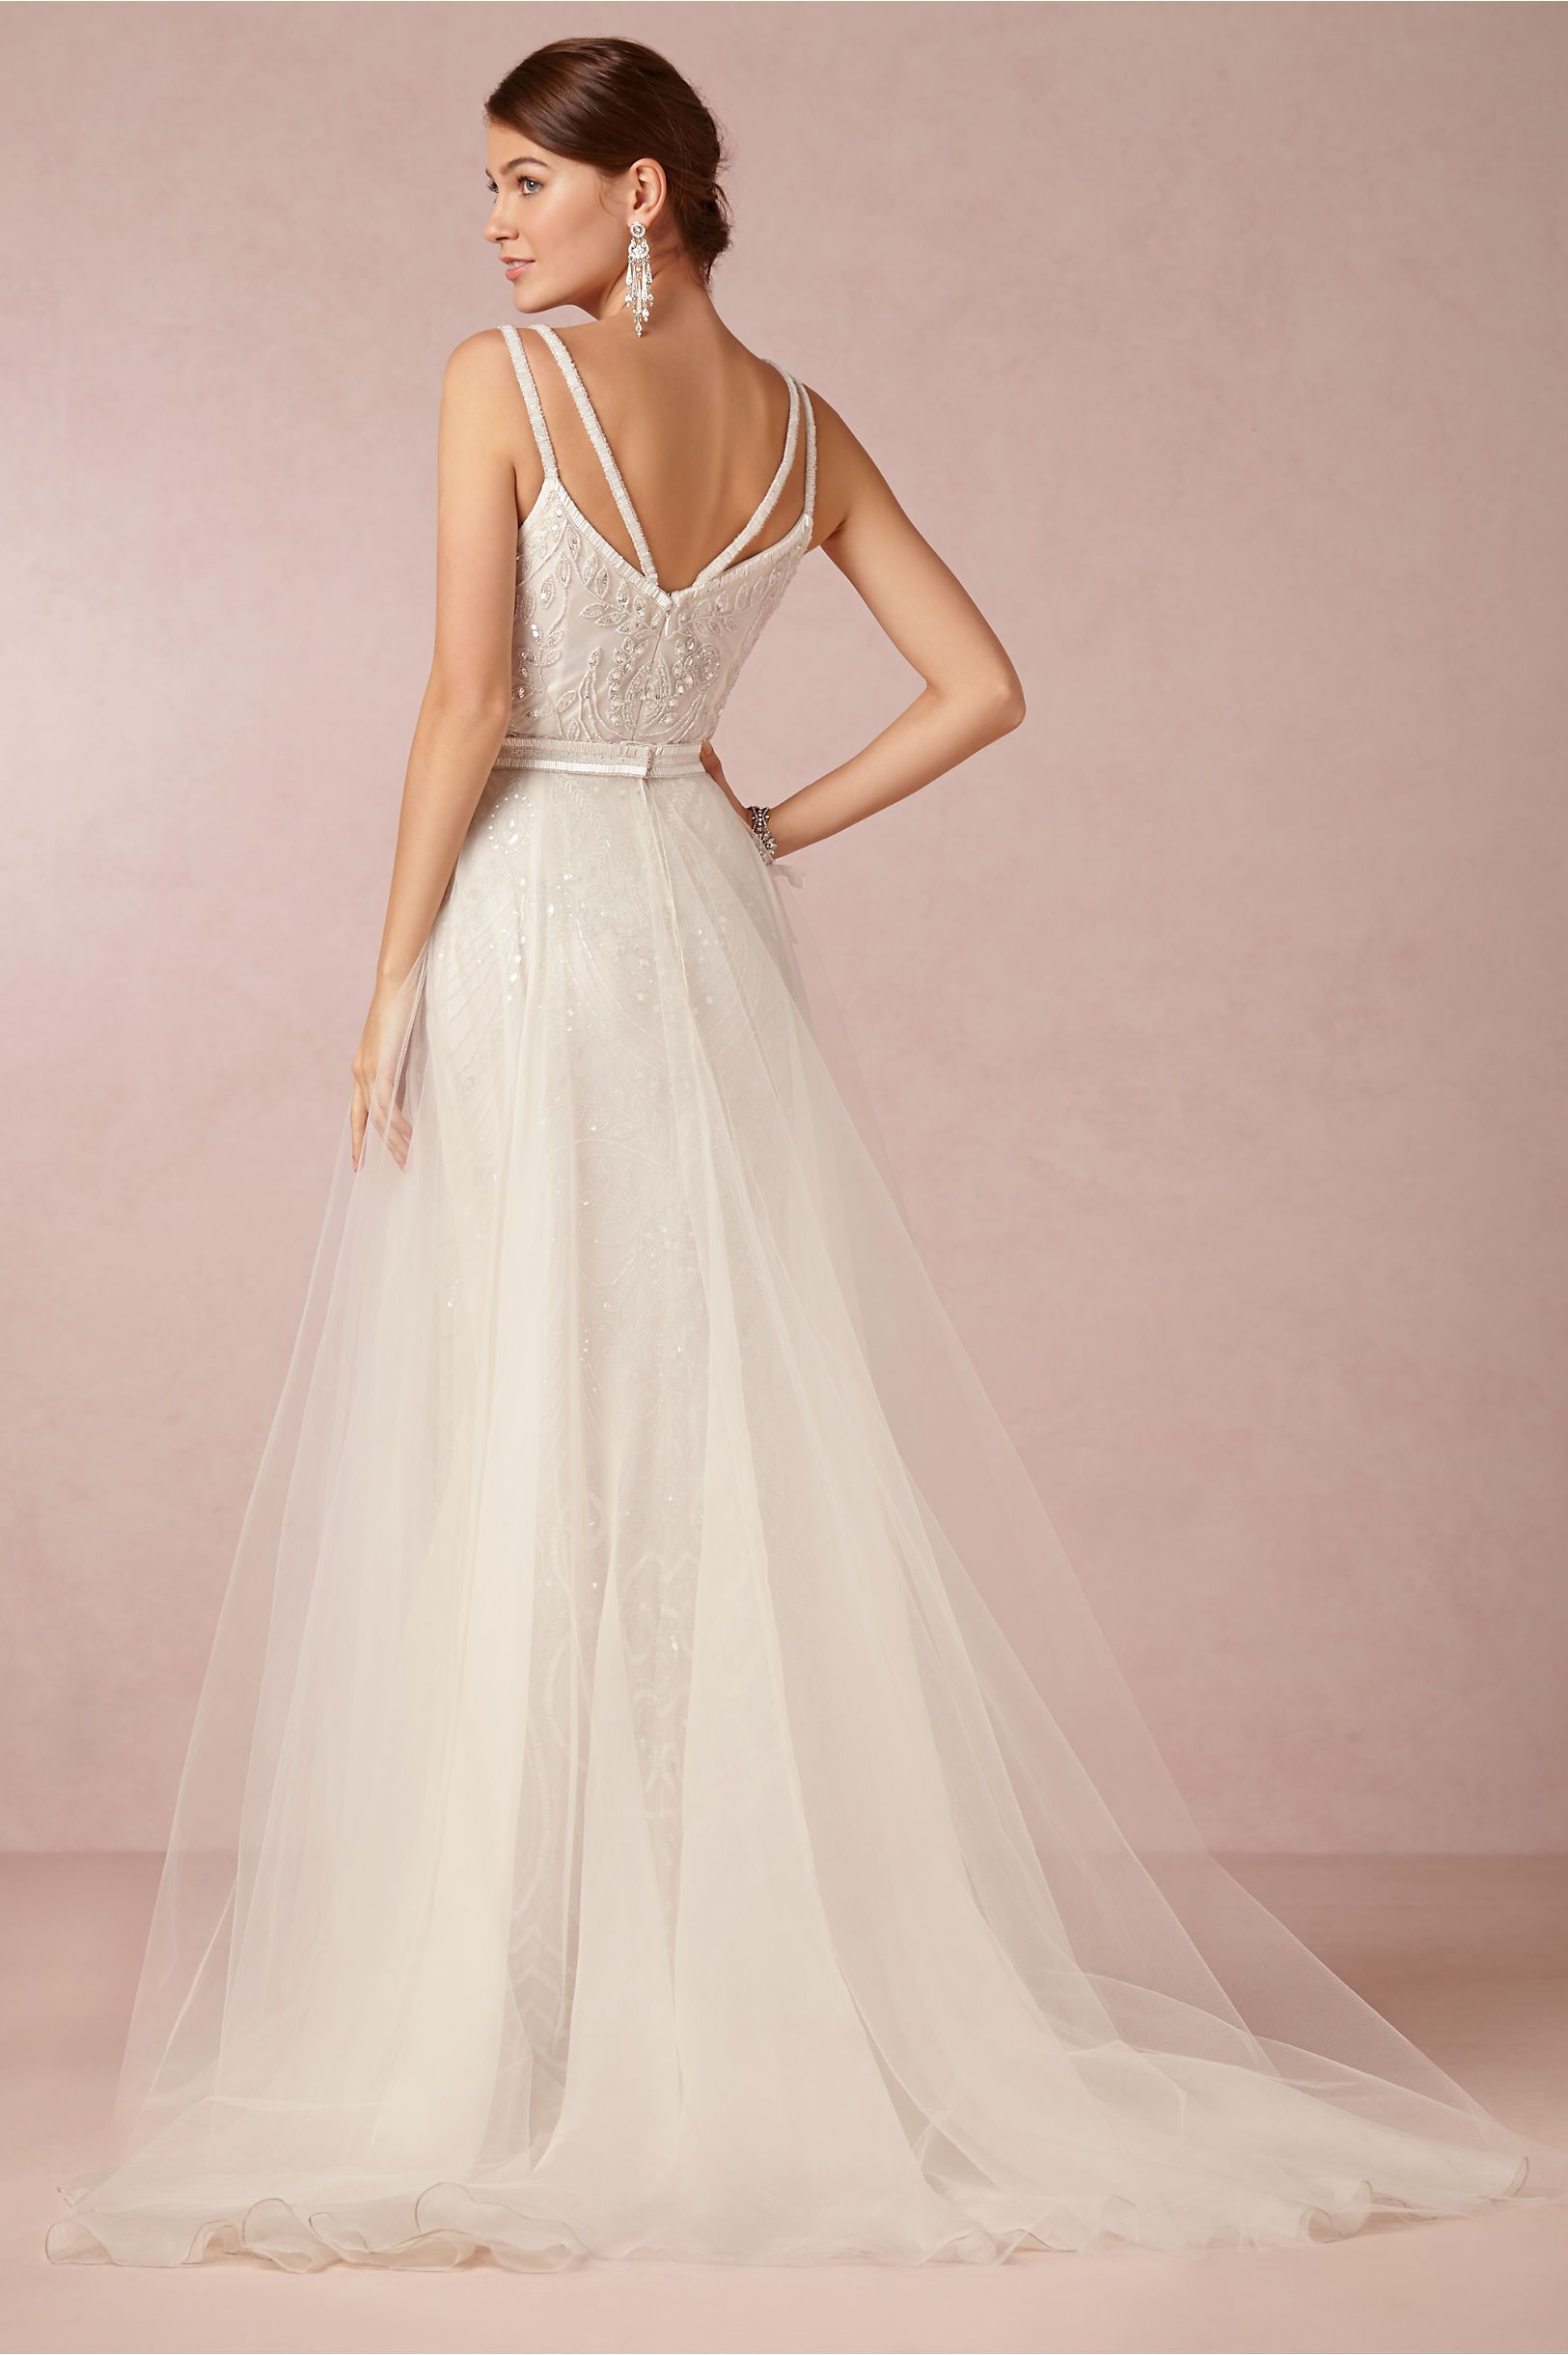 Elsa Gown From BHLDN This Overskirt With The Sparklies Underneath